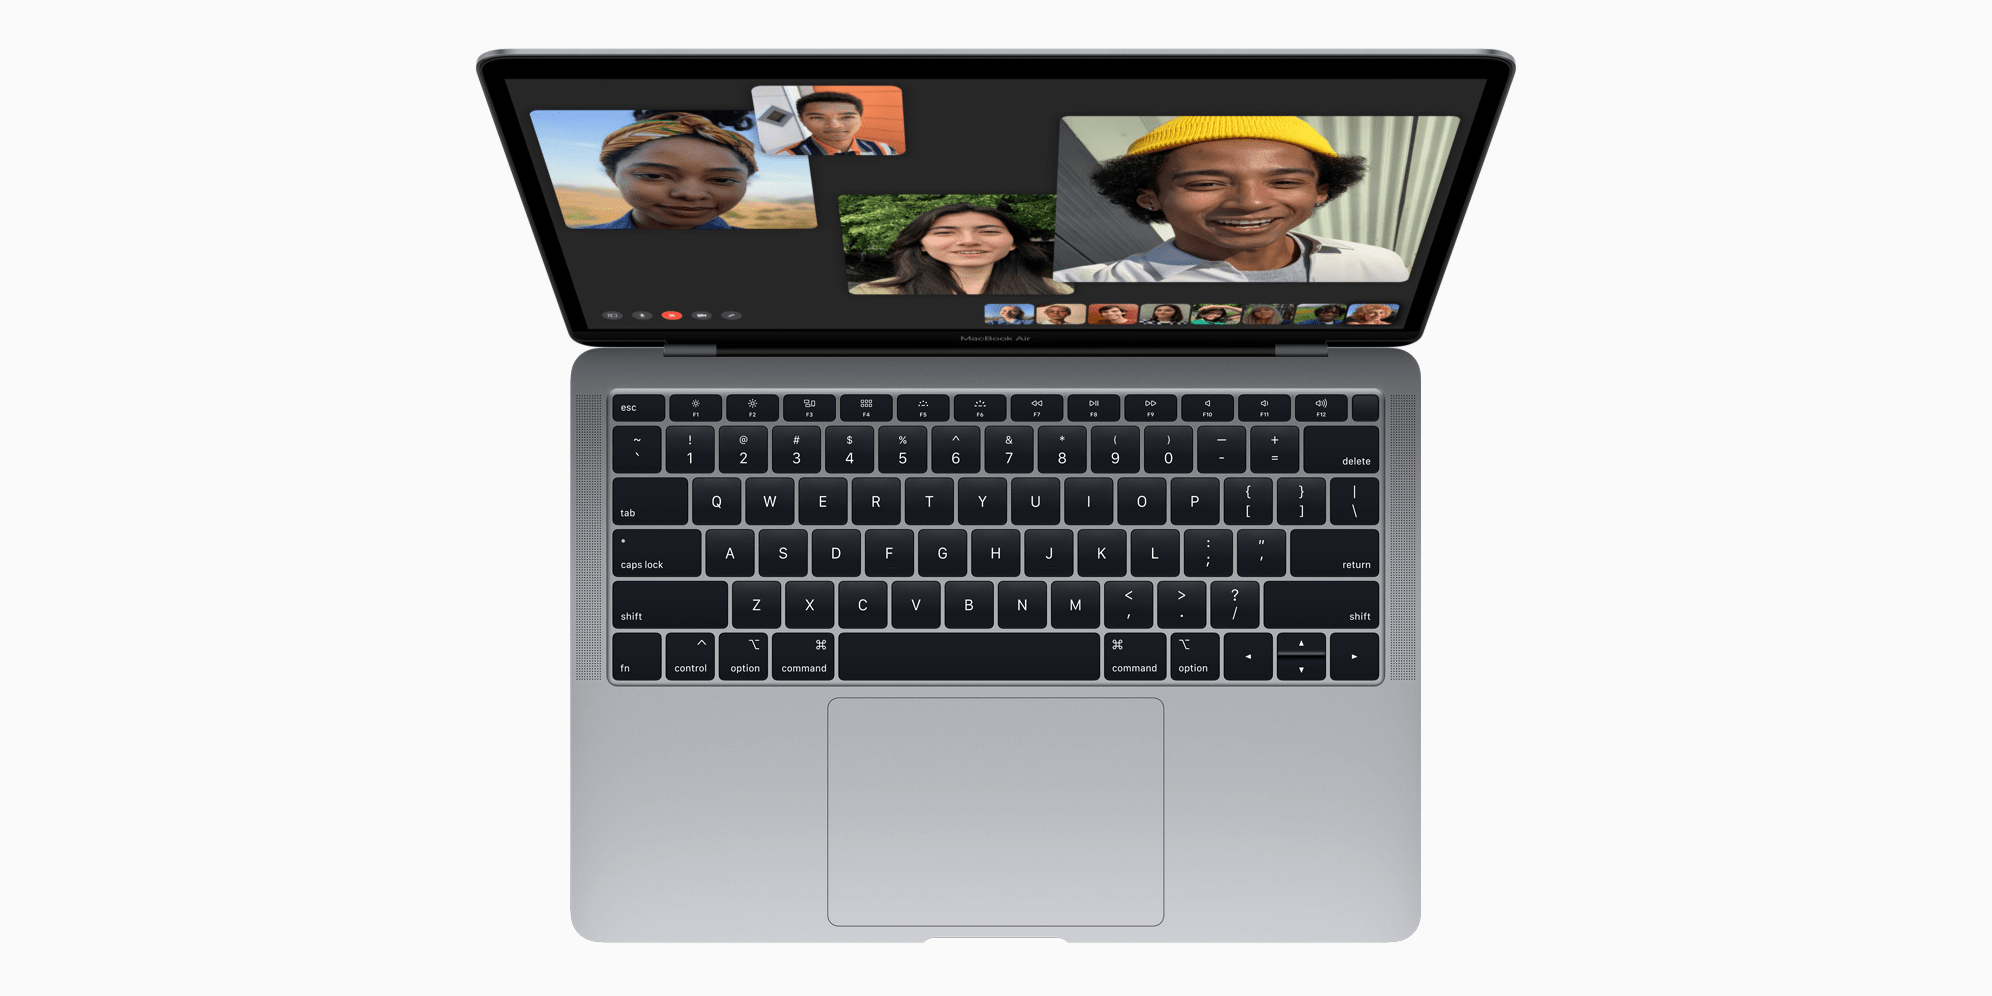 The new Macbook Air has 35% slower SSD compared to the older 2018 model